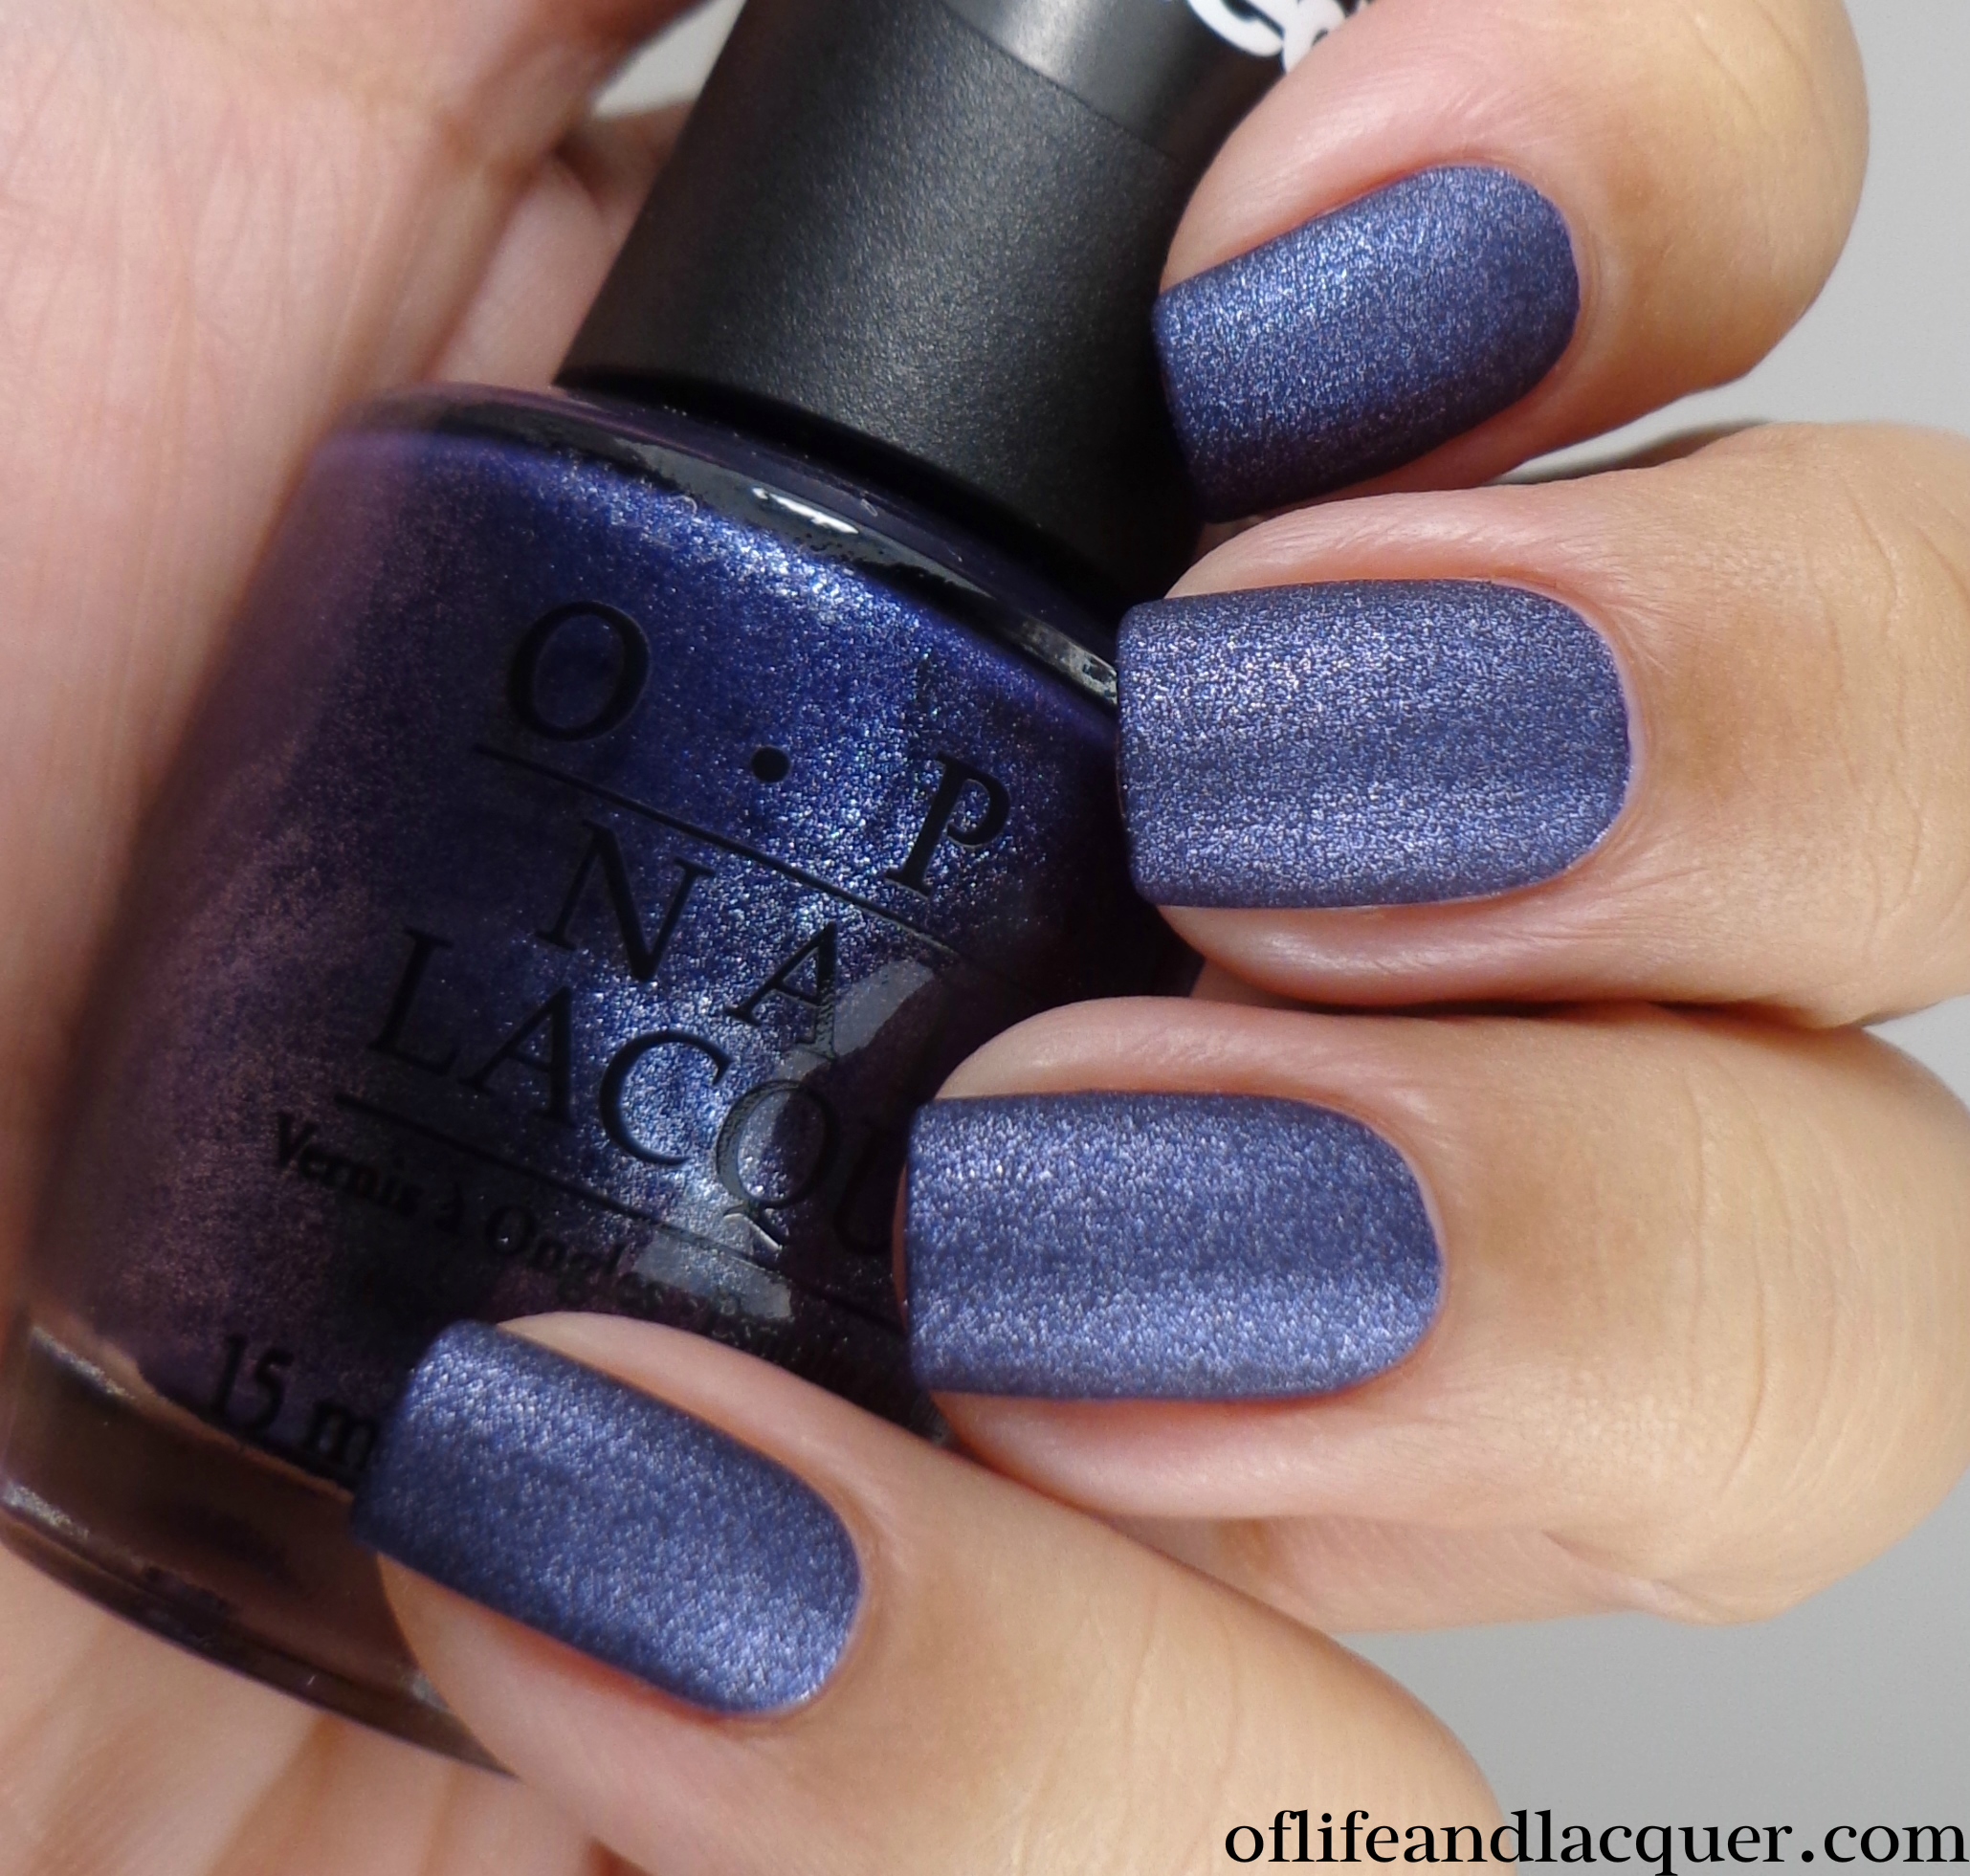 OPI Ink Suede 2a - Of Life and Lacquer